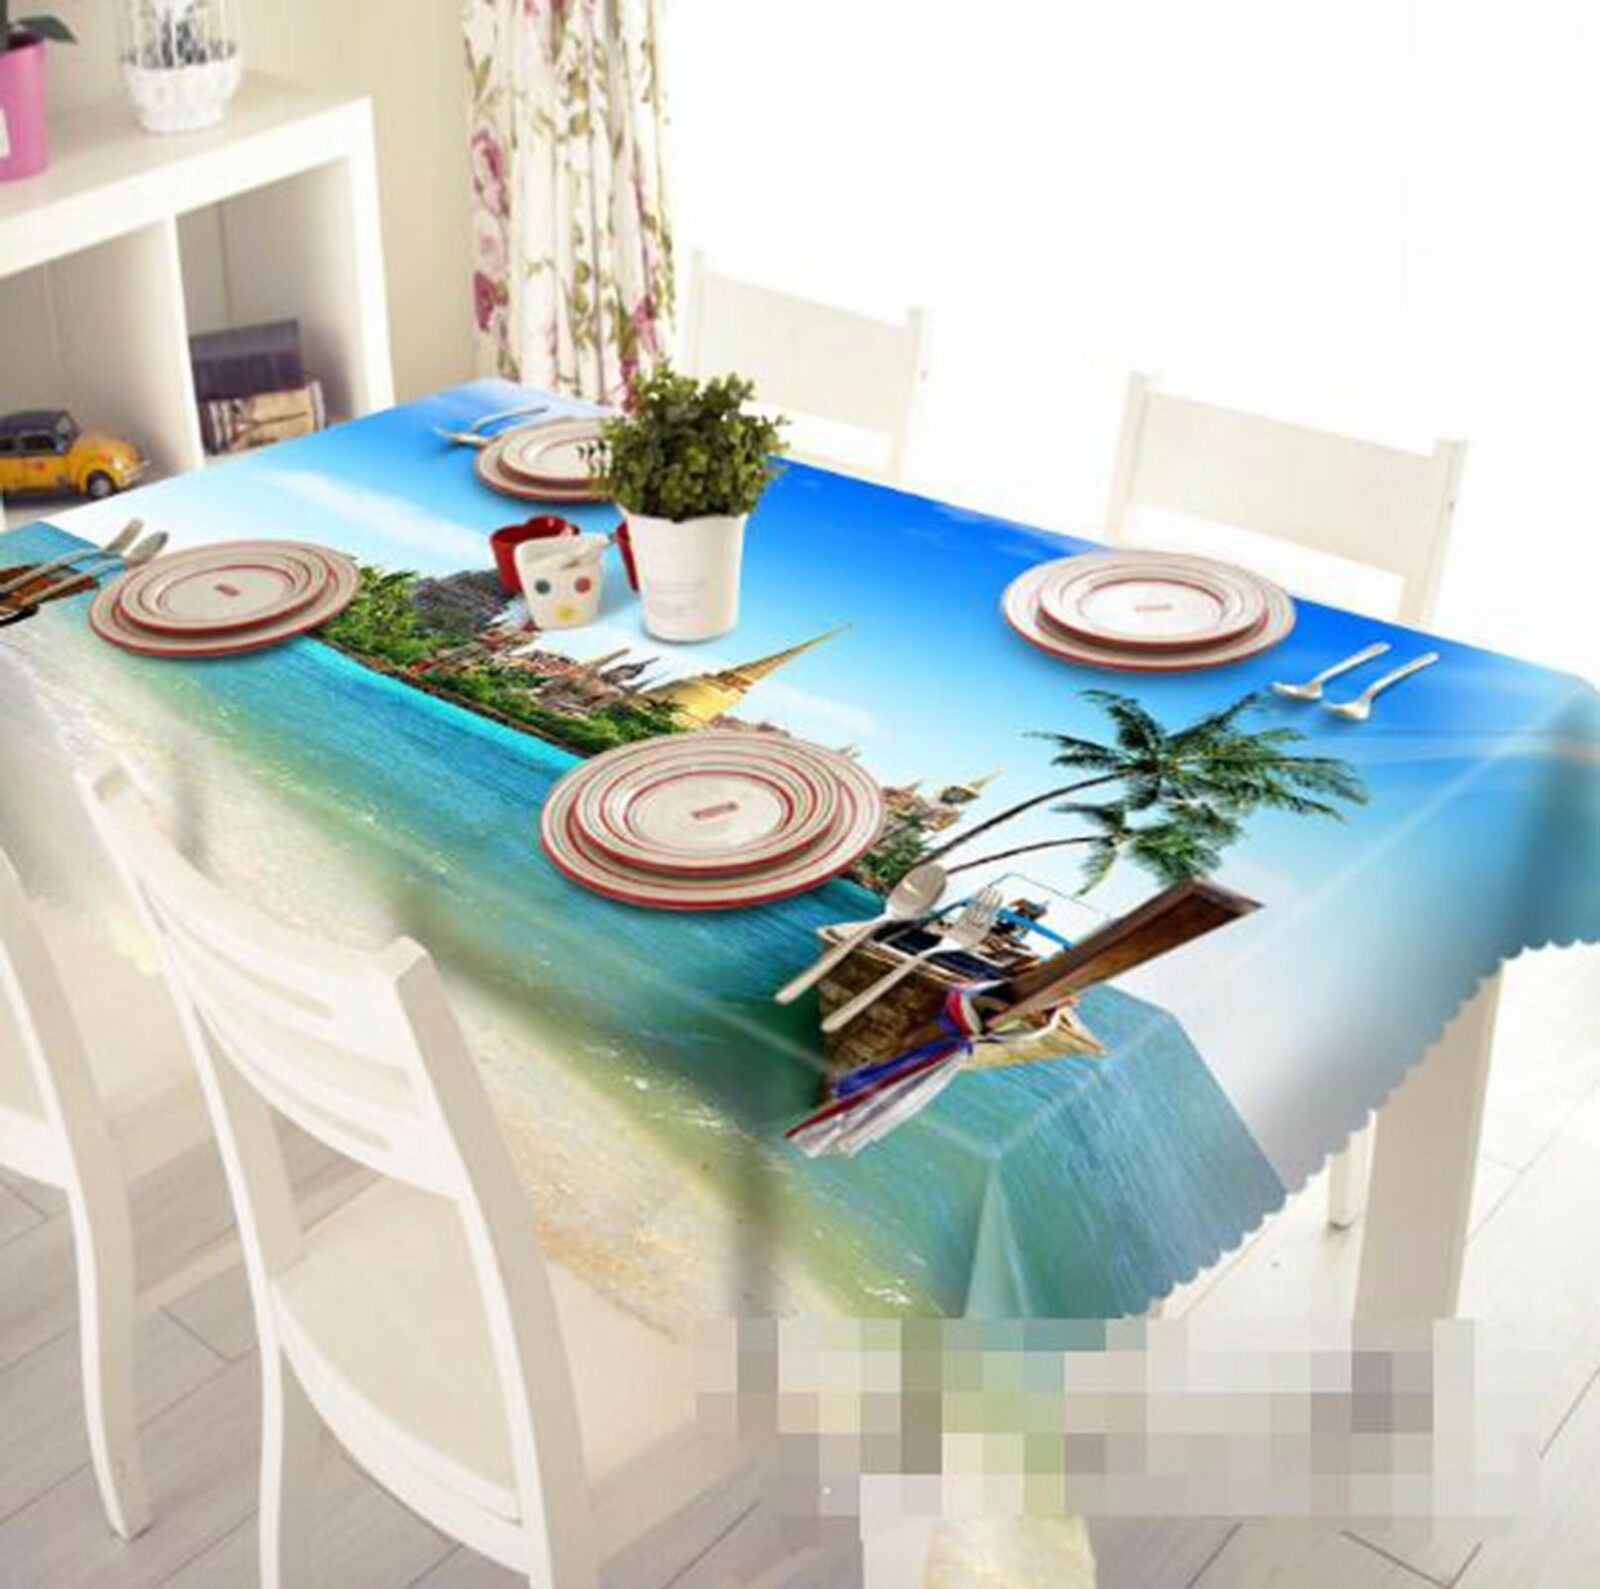 3D Ocean View Tablecloth Table Cover Cloth Birthday Party AJ WALLPAPER UK Lemon